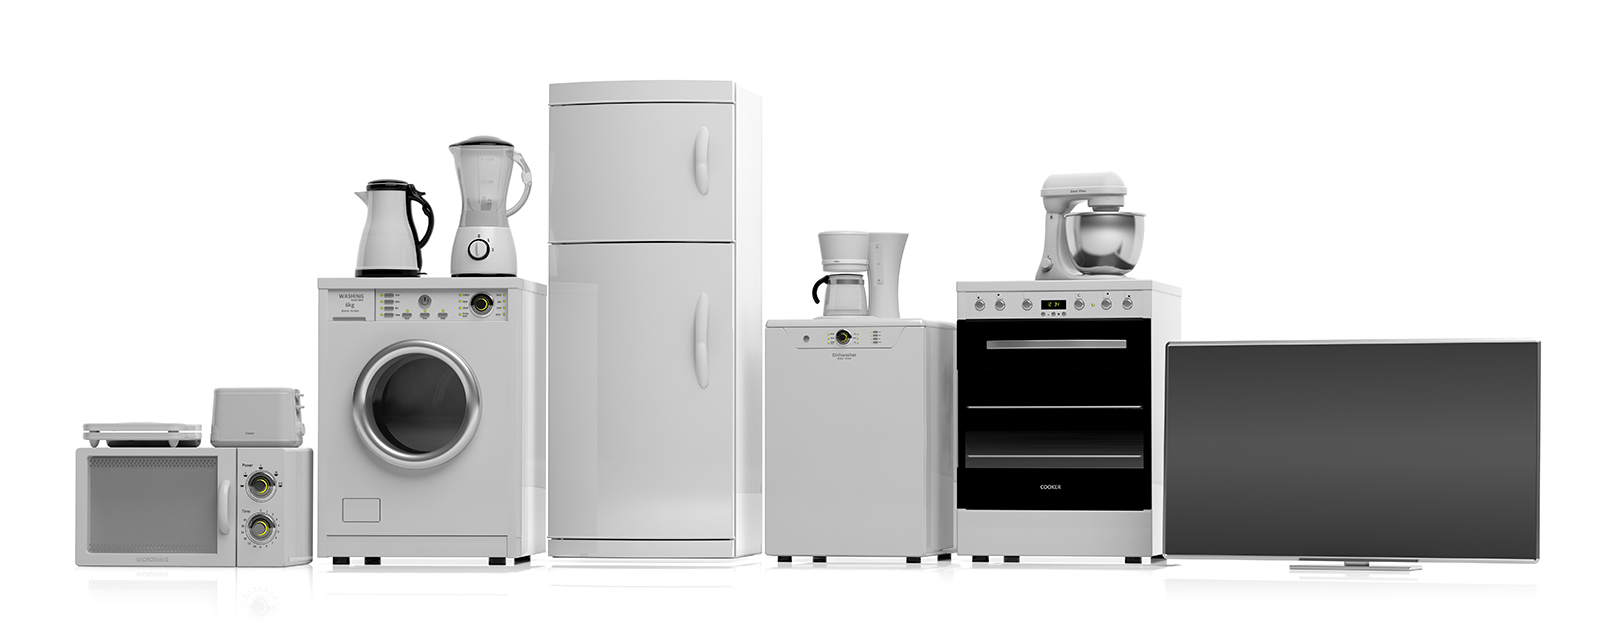 appliances.jpg